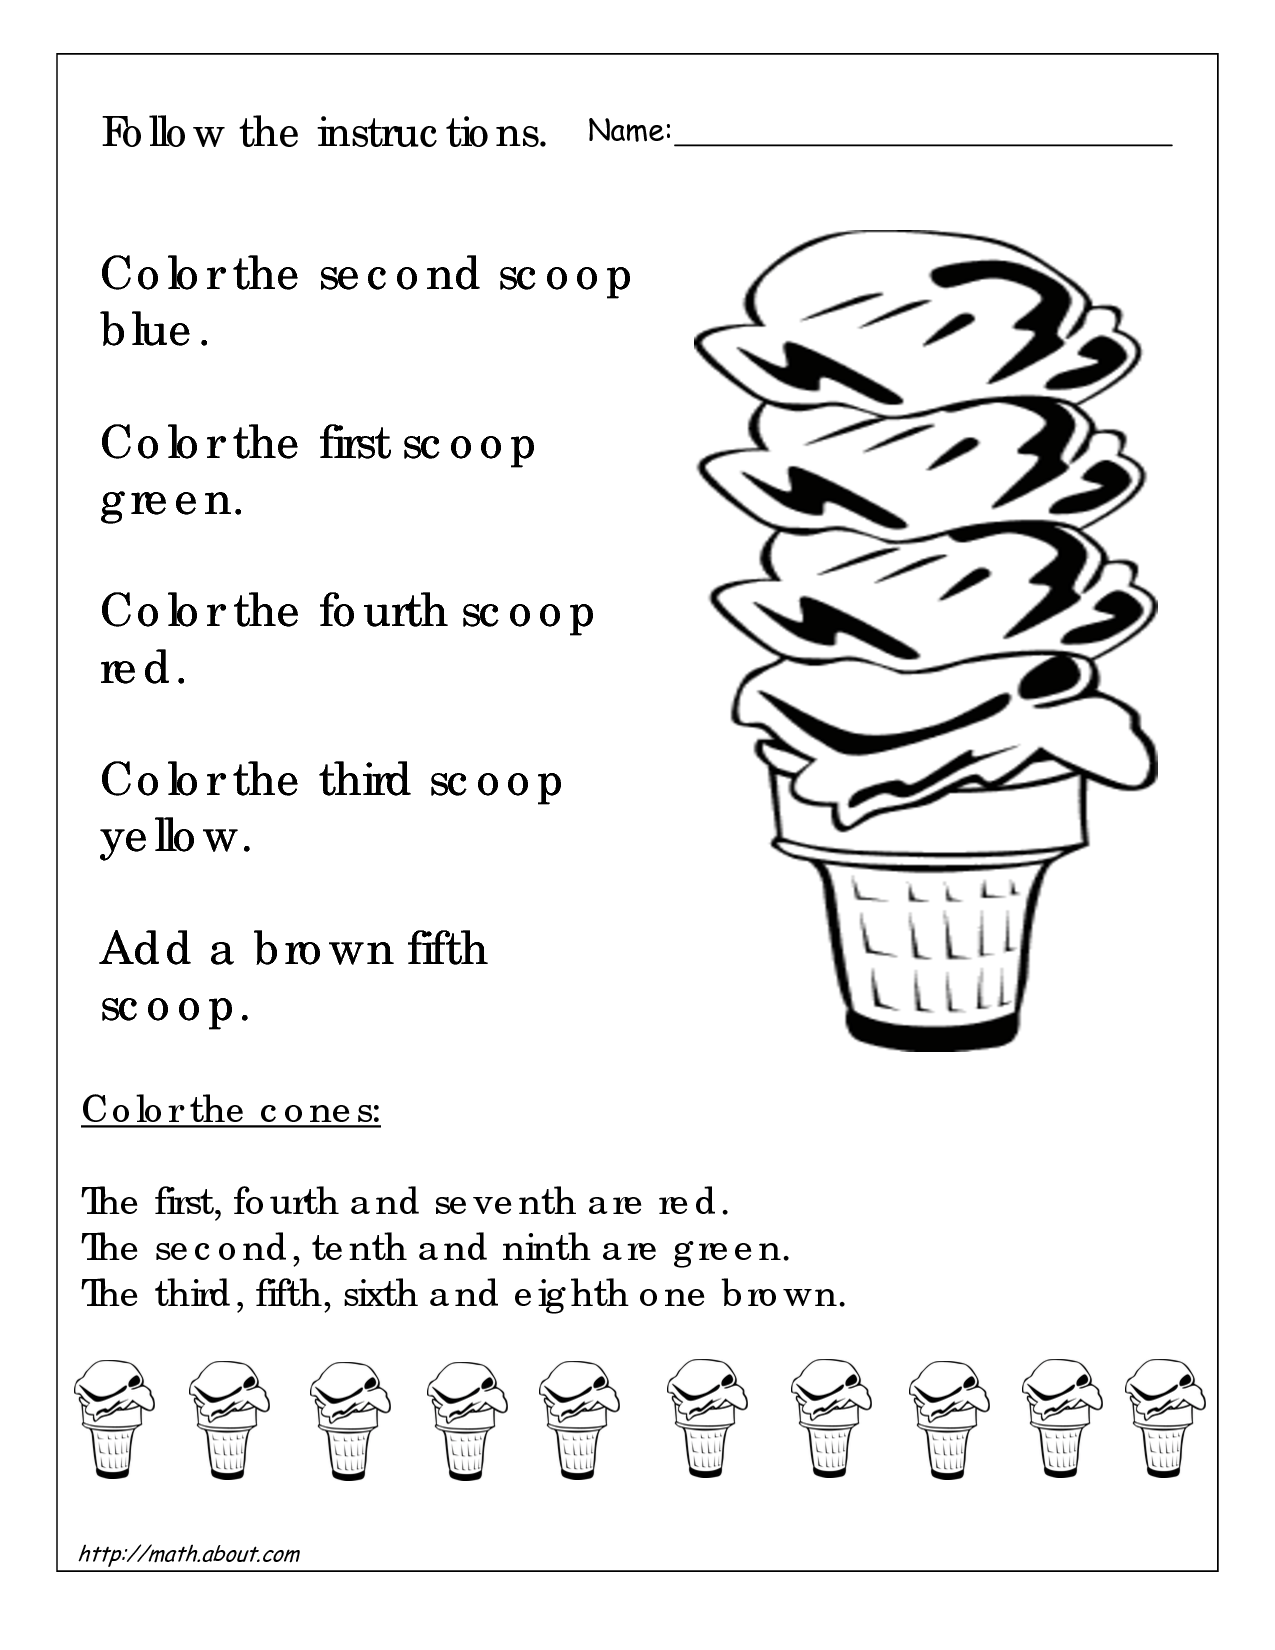 worksheet Printable 3rd Grade Math Worksheets math worksheets for 3rd graders 1st grade printable students